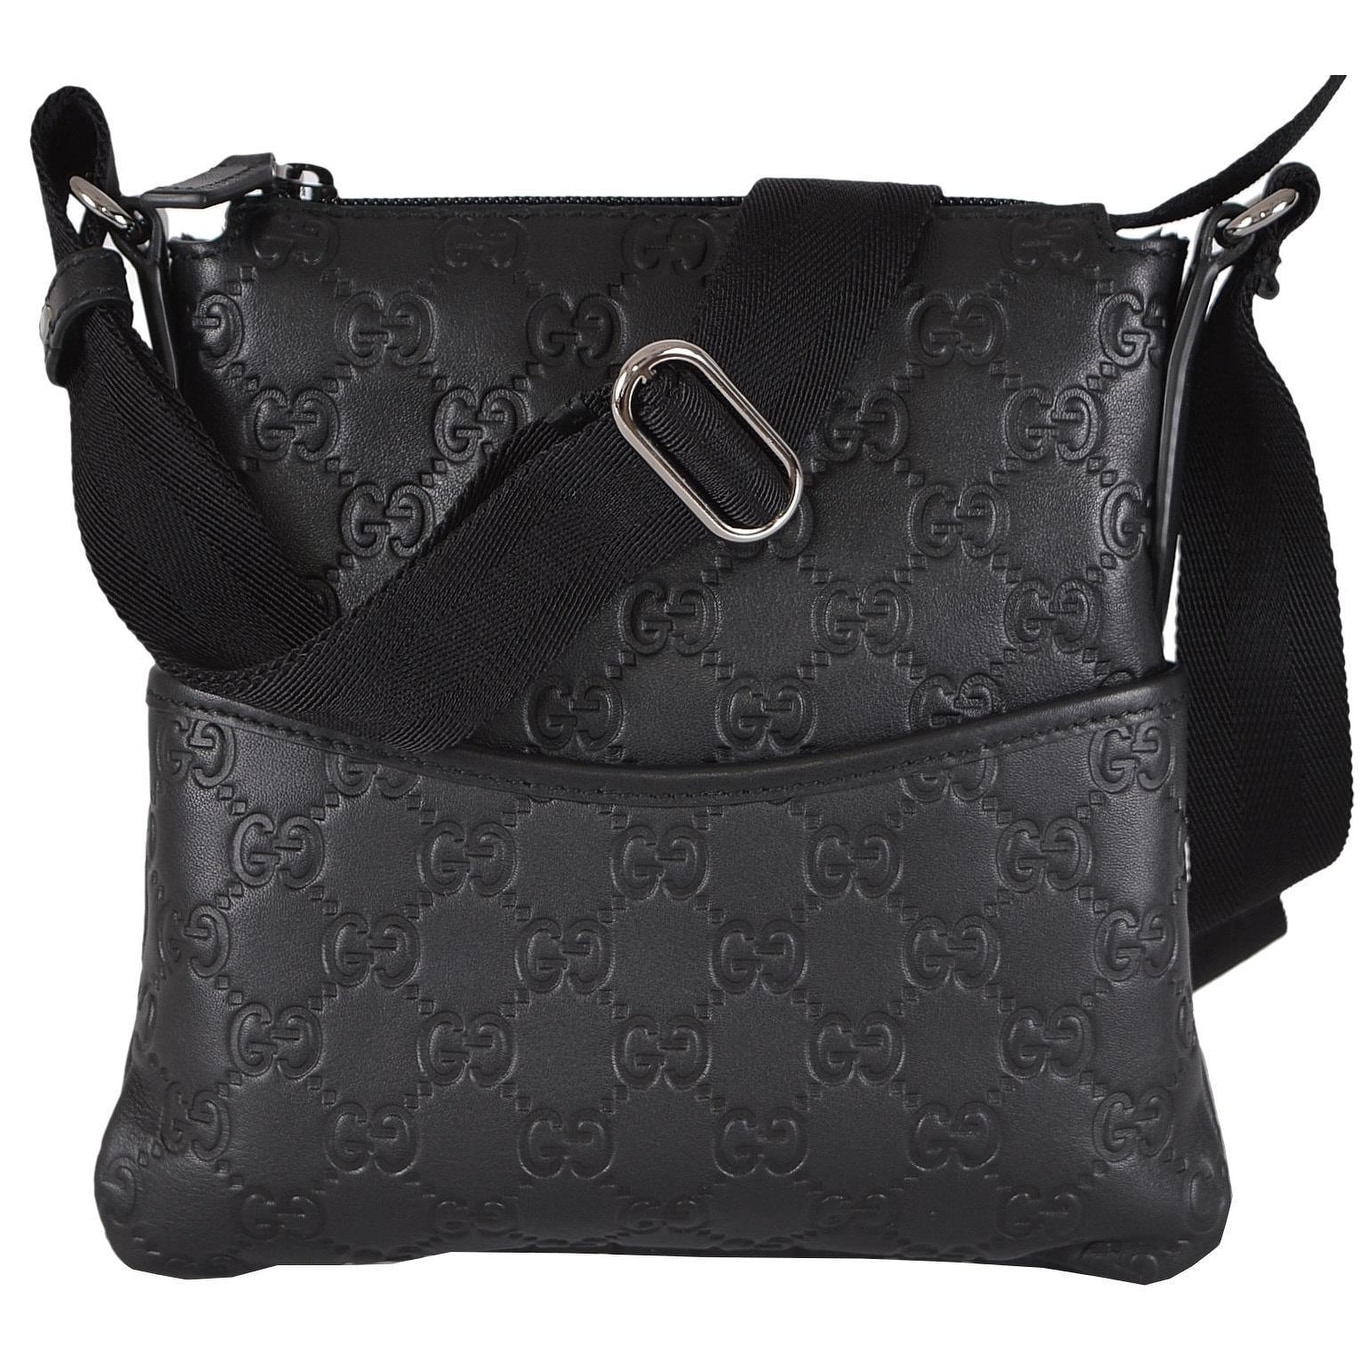 e7d82ffa0ca081 Shop Gucci 374416 MINI Black Leather GG Guccissima Crossbody Day Purse Bag  - Free Shipping Today - Overstock - 12141105